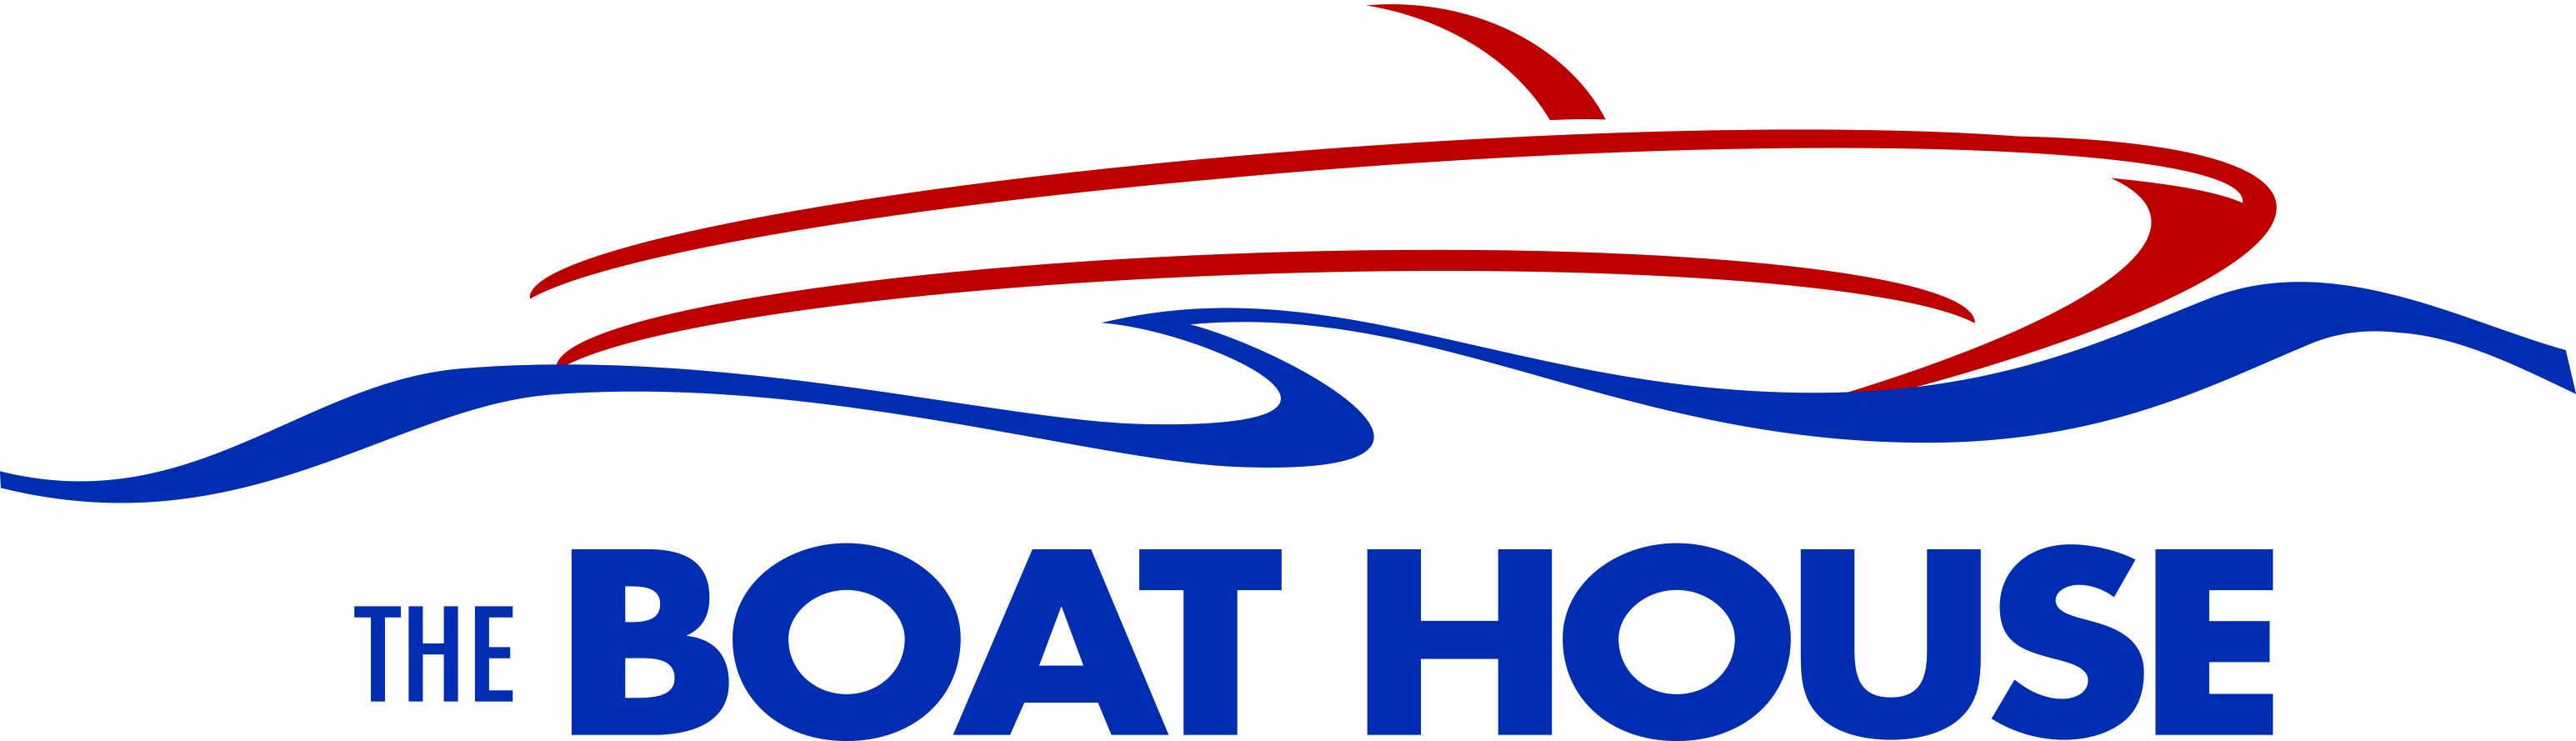 BOAT HOUSE OF CAPE CORAL, THE